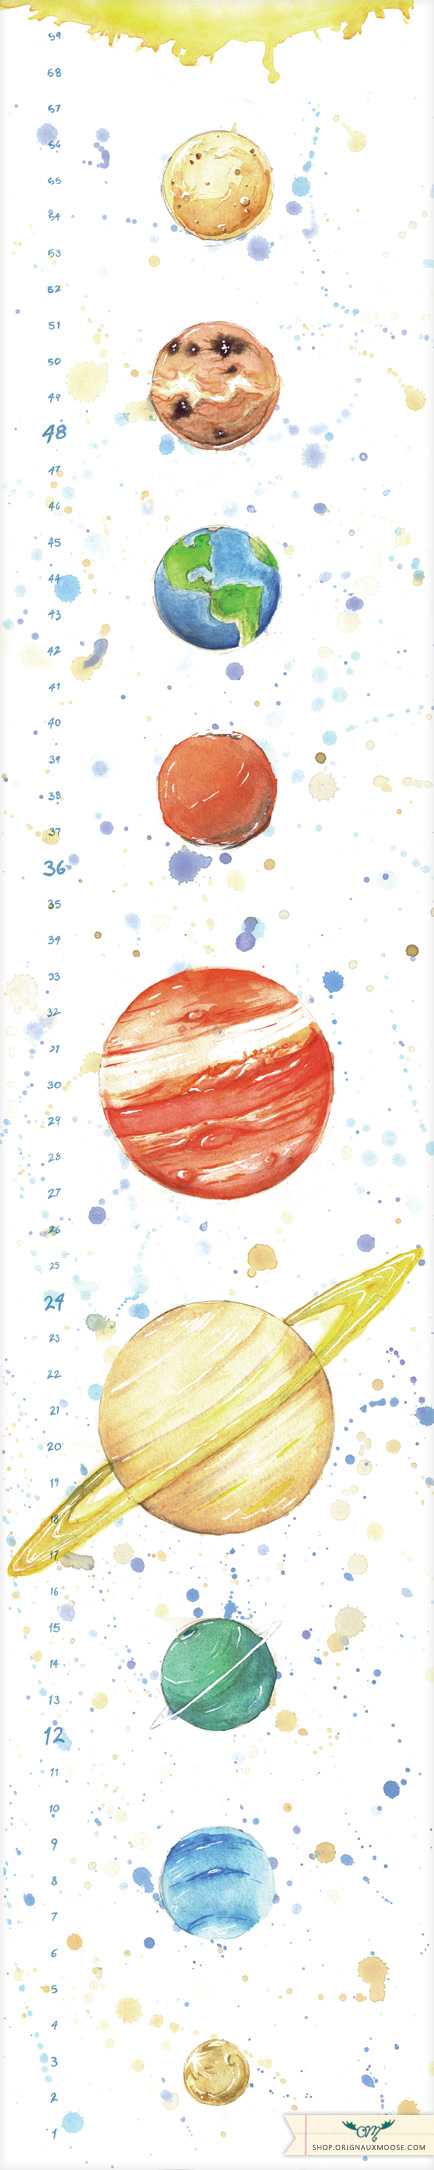 434x2170 Watercolor Planets Interesting Tattoos Collection